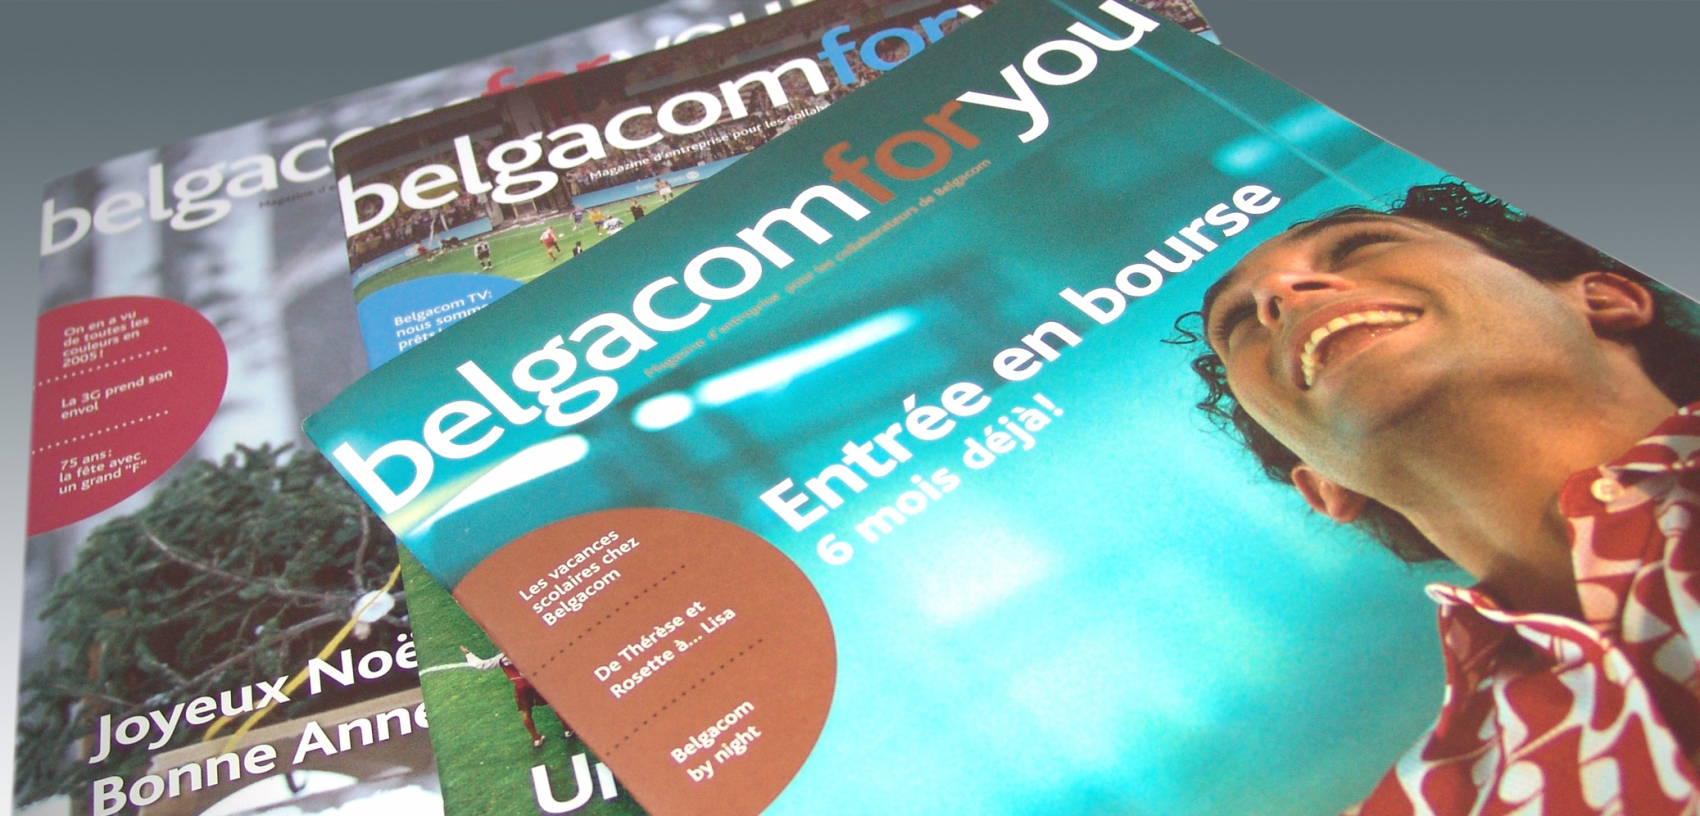 Belgacom - Internal Newsletter